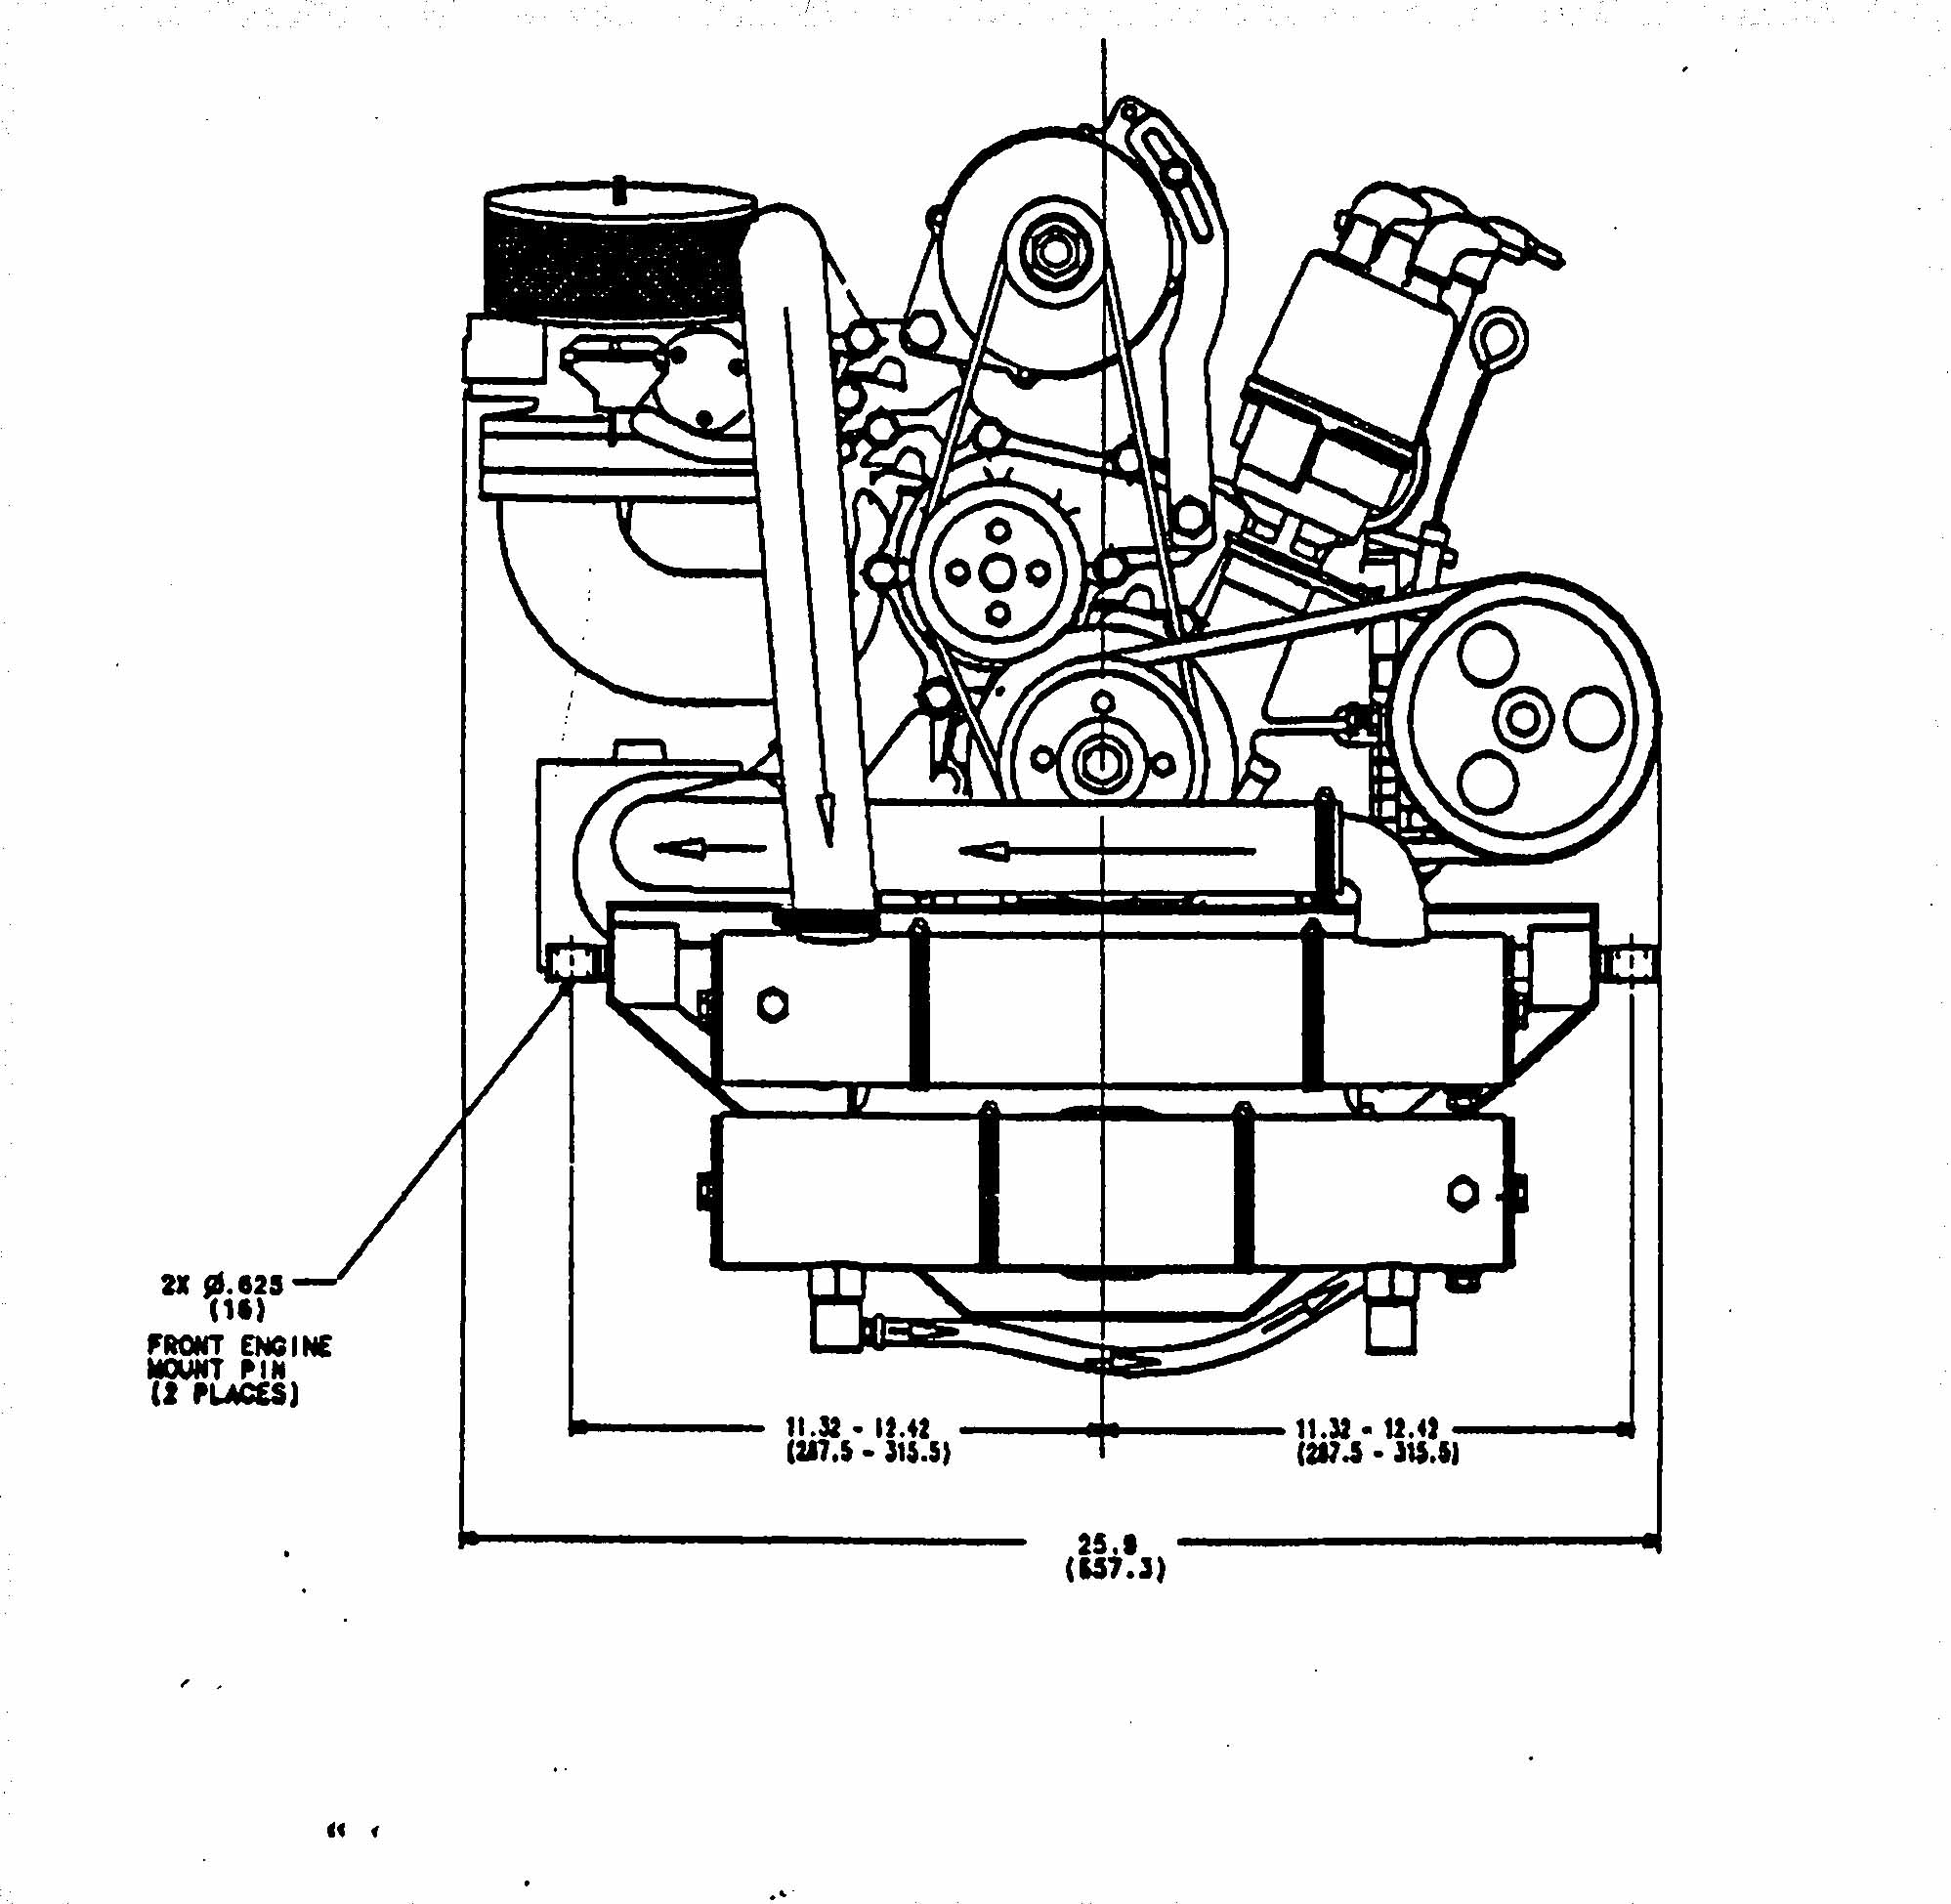 Rx7 13b Engine Diagram Content Resource Of Wiring Diagram \u2022 Small  Engine Fuel Line Diagram 13b Rotary Engine Diagram